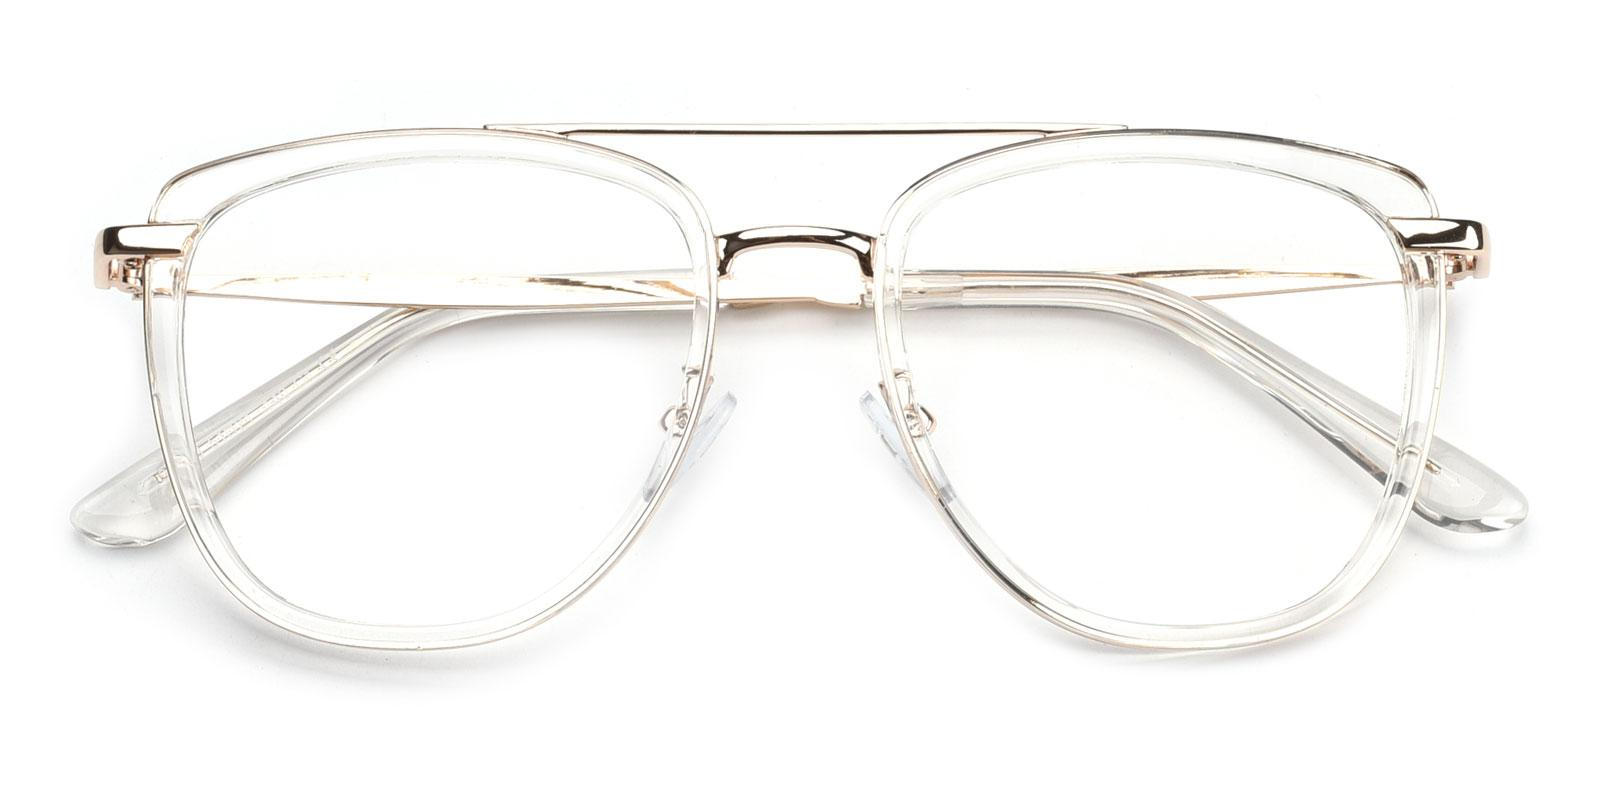 Bid-White-Aviator-Combination-Eyeglasses-detail